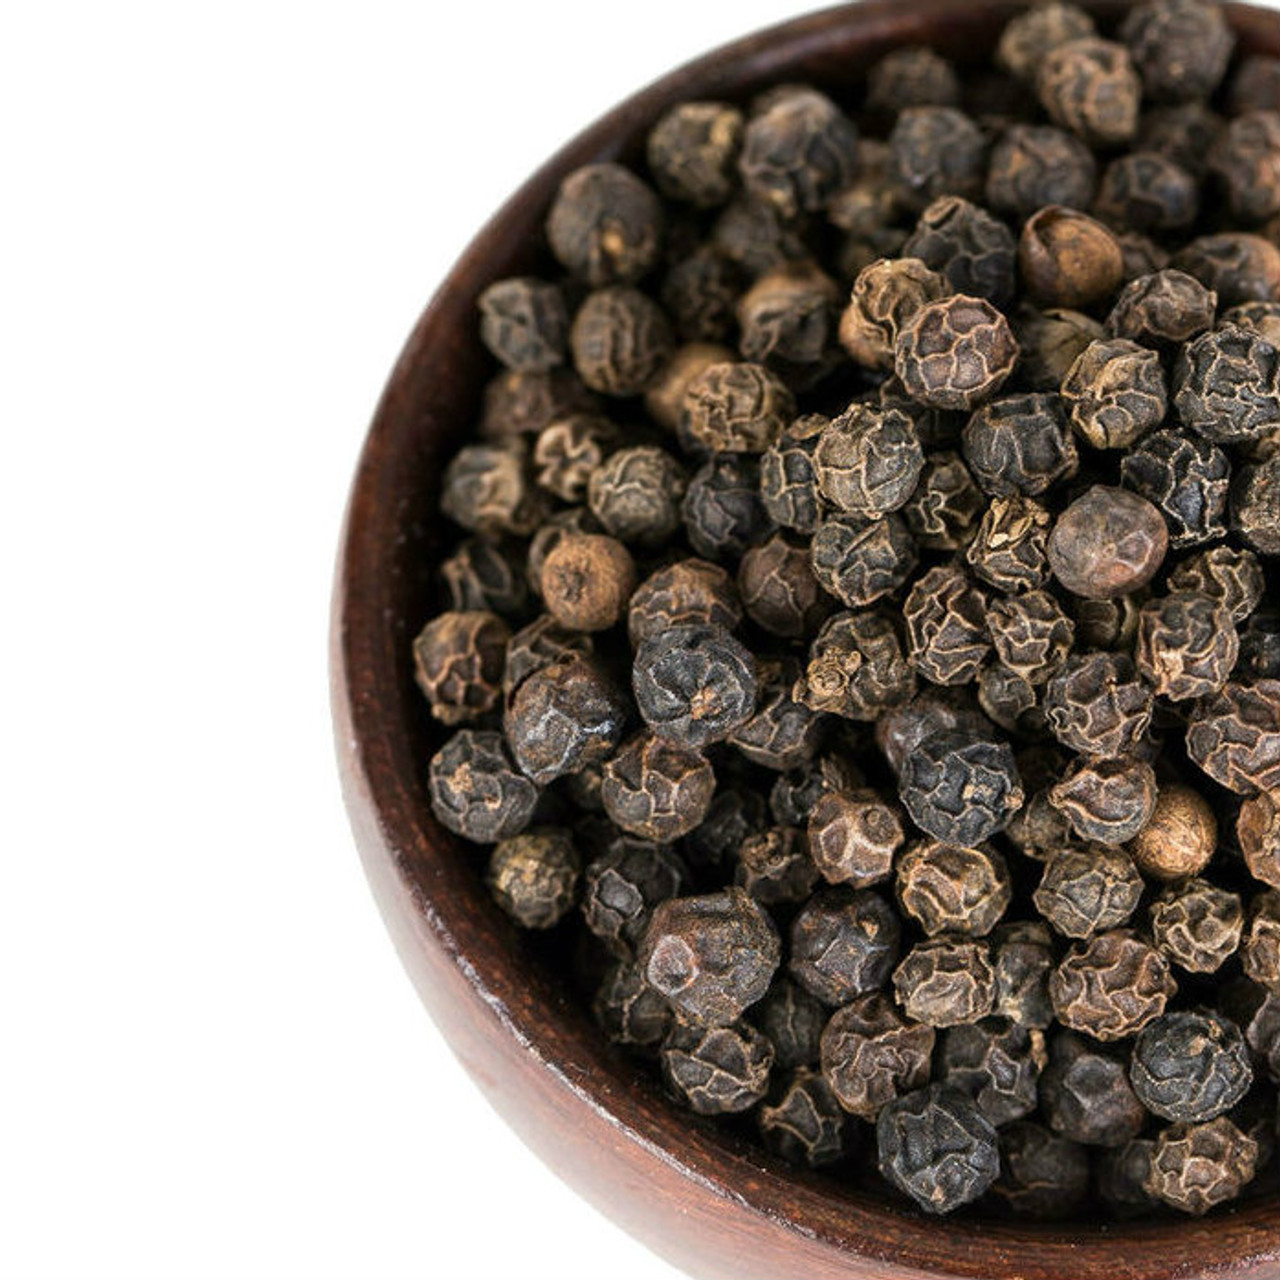 Black Peppercorns are an essential seasoning, highly aromatic with a crisp, robust flavor that complements a wide variety of foods. A natural complement to the deep, berry-like flavor of venison, use it to flavor venison steaks or venison stews. Keep a pepper mill handy to grind Black Peppercorns fresh every time. Olive oil, lemon juice, salt and cracked pepper make a zesty salad dressing. Pepper loses its flavor when cooked for long periods of time, so add close to the end of cooking time.